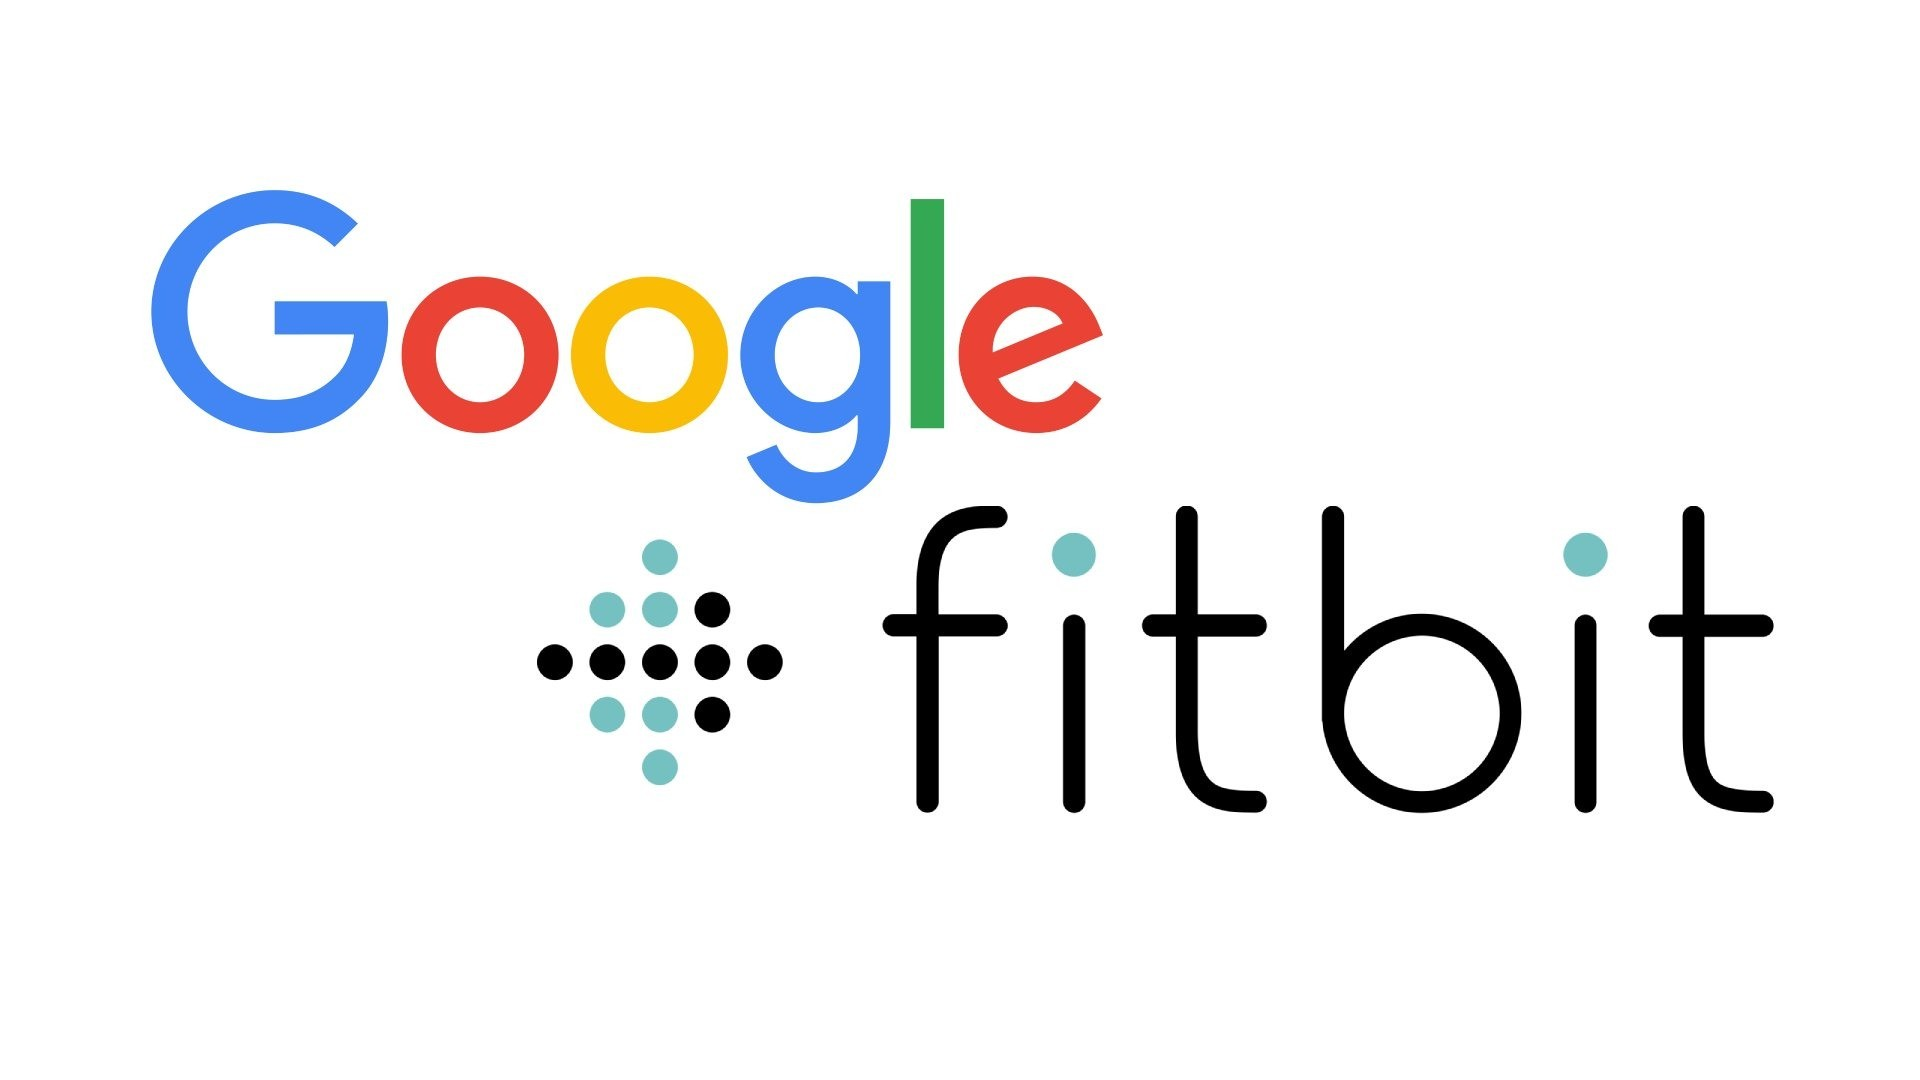 Google's behavioural undertaking for proposed FitBit deal rejected by ACCC